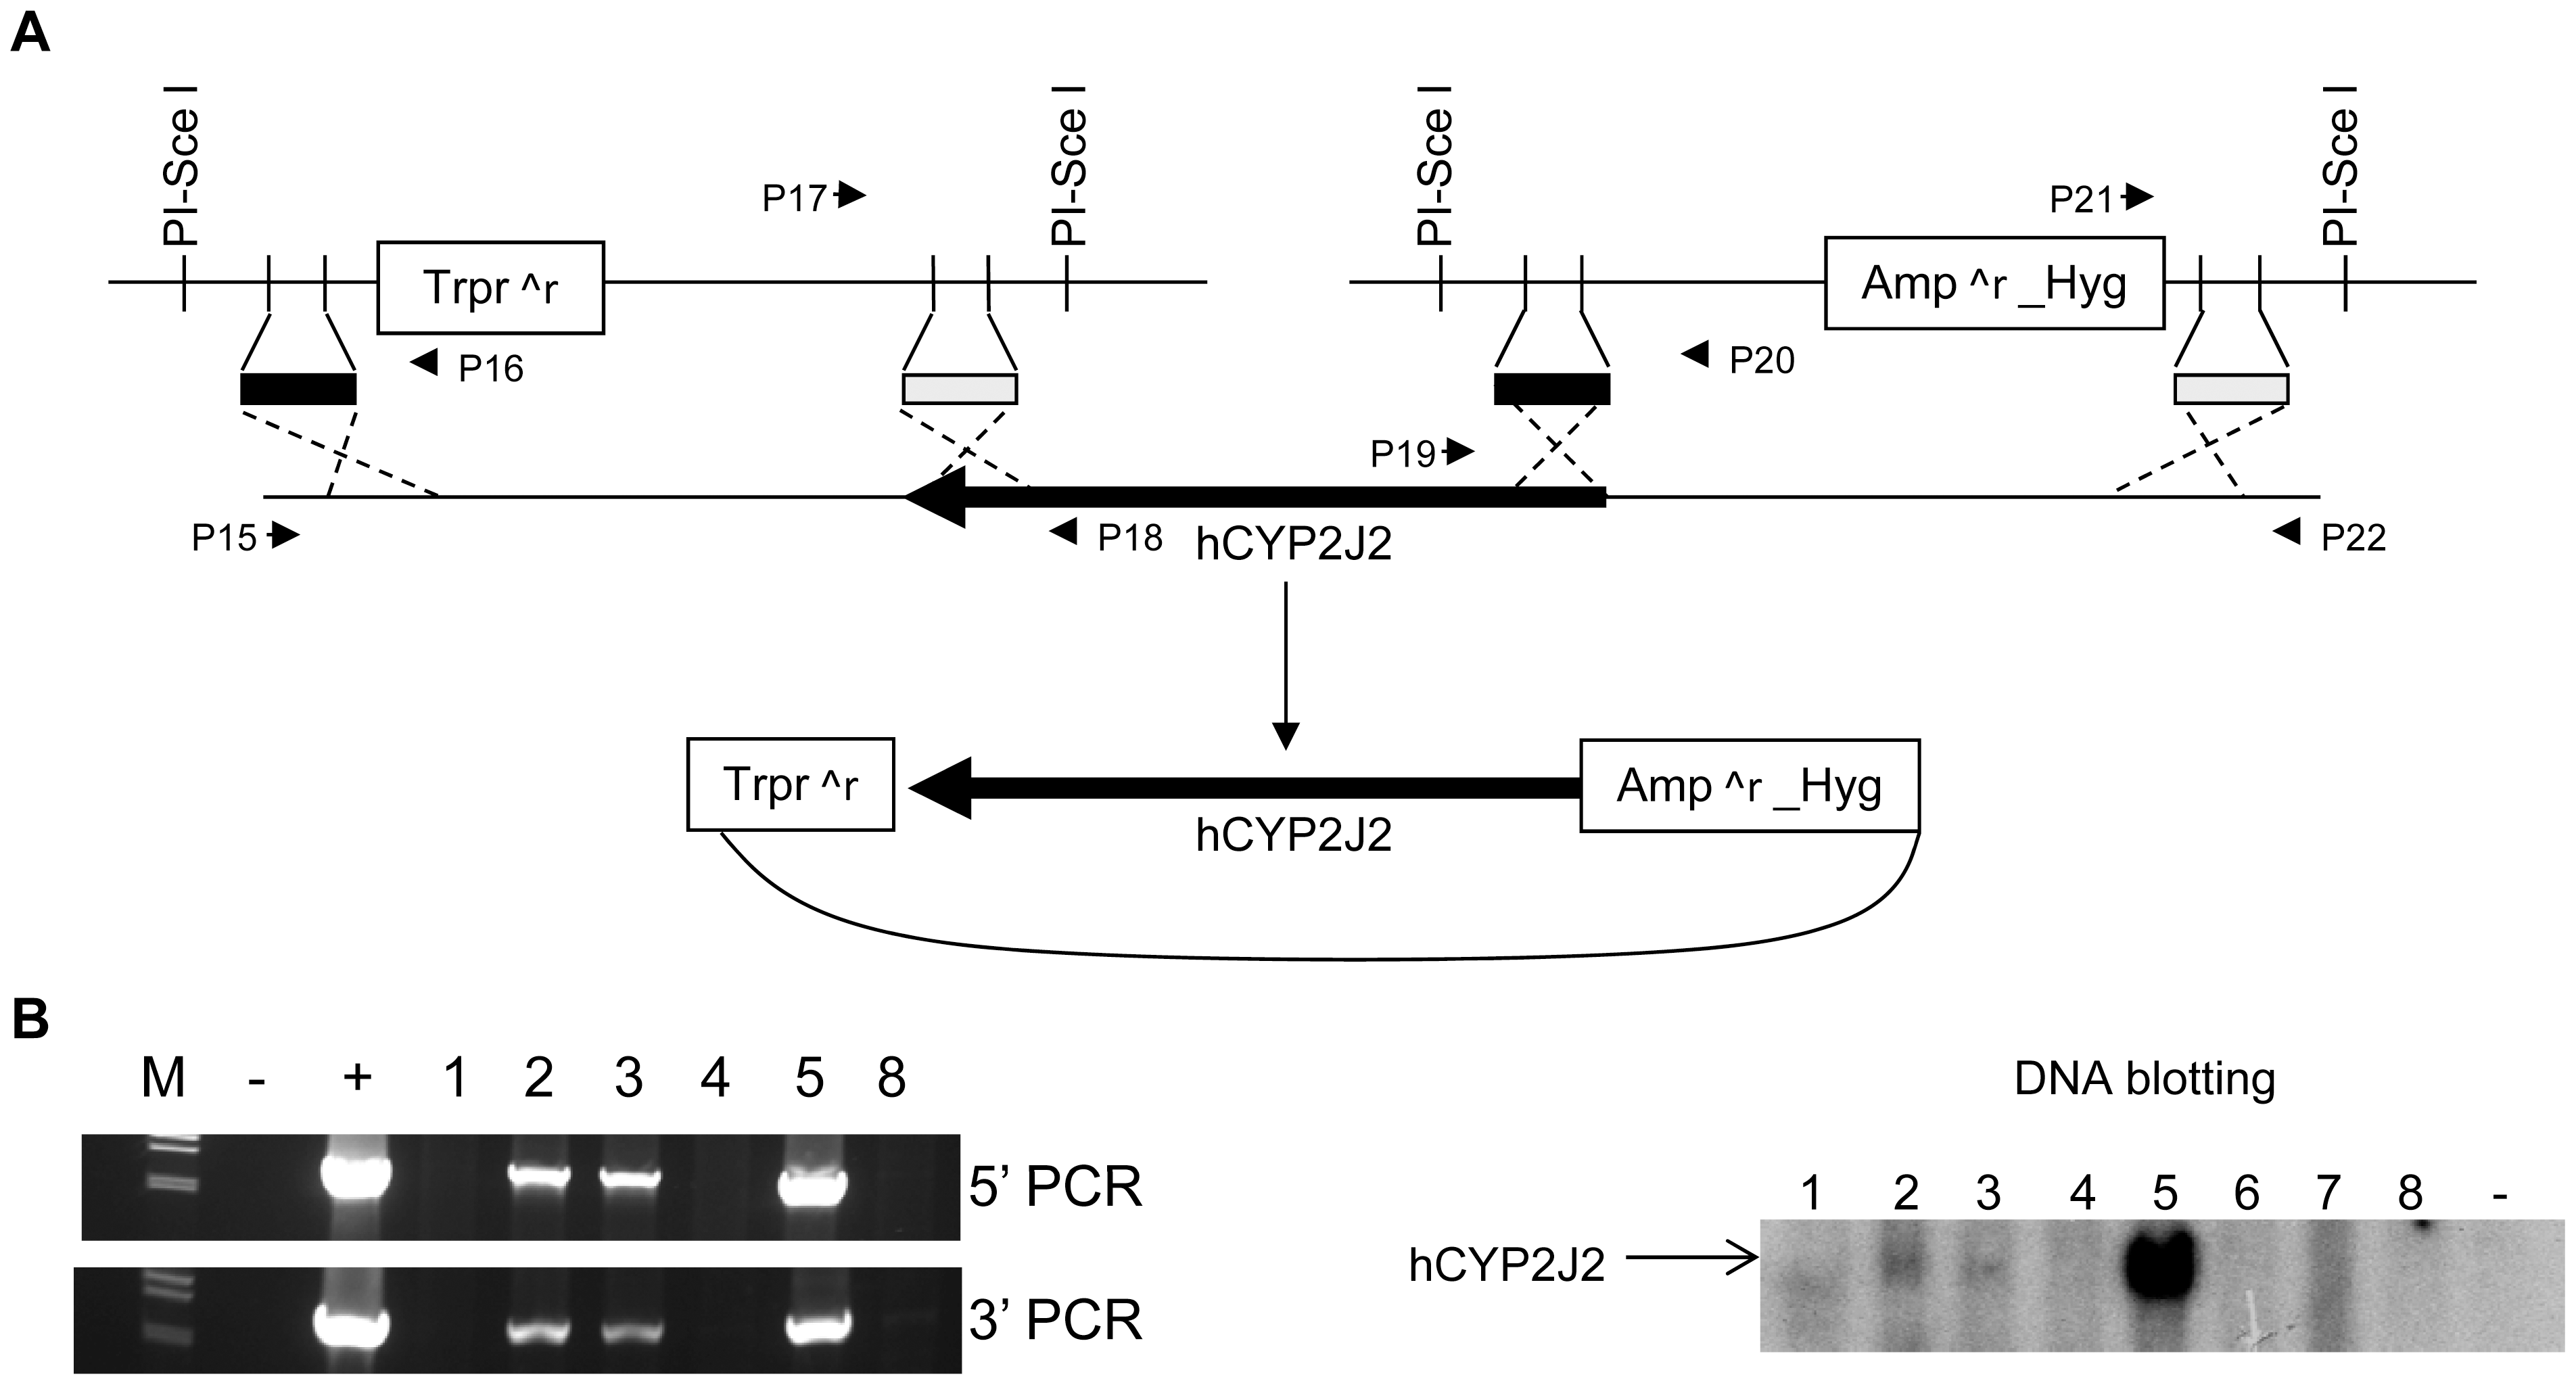 Creation of human <i>CYP2J2</i> transgenic mice.